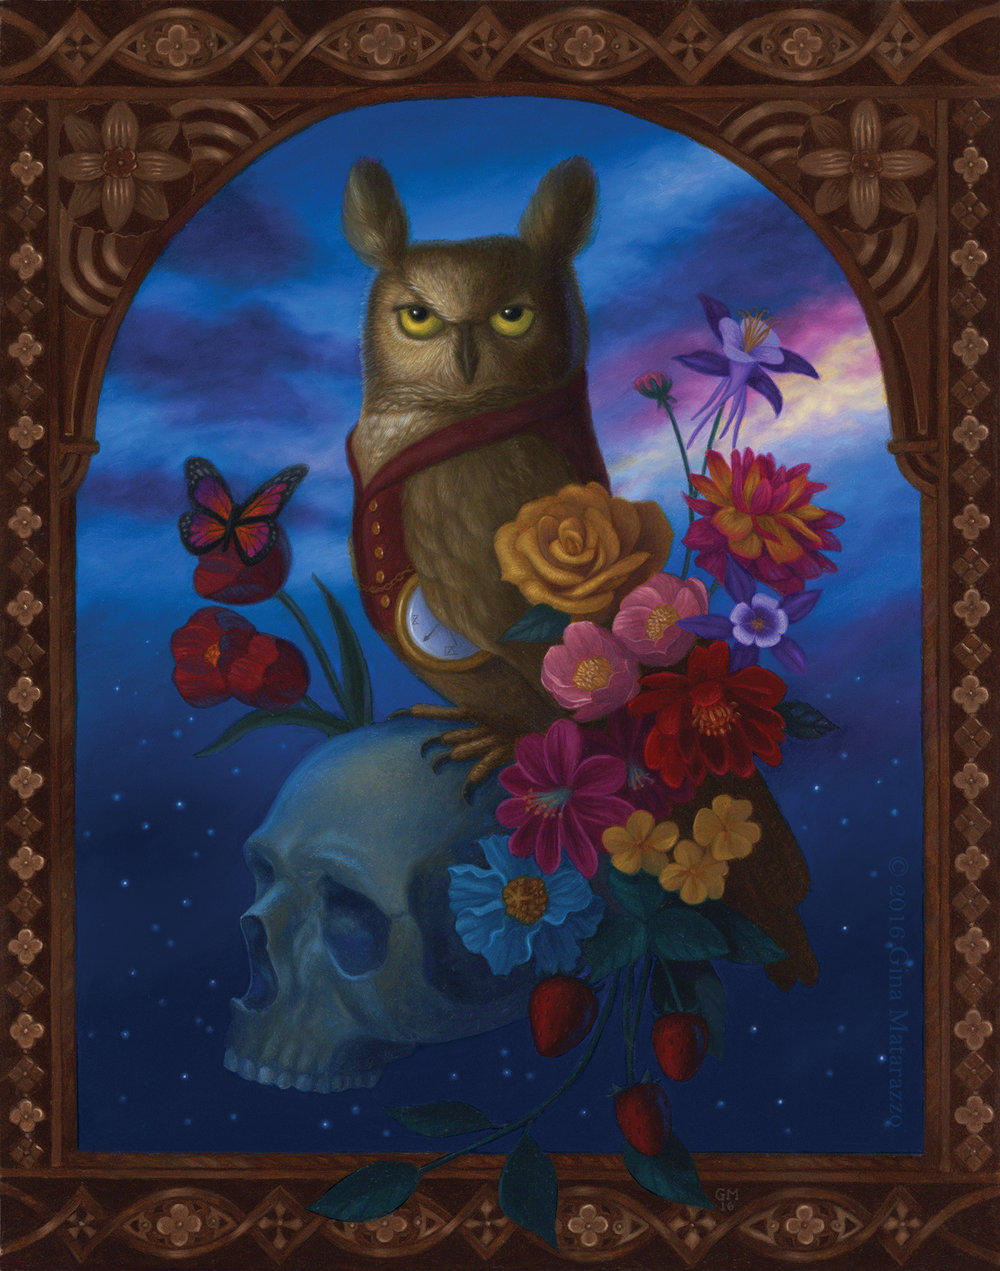 owl_night_flowers_skull_illustration_imaginative_realism_gina_matarazzo.jpg